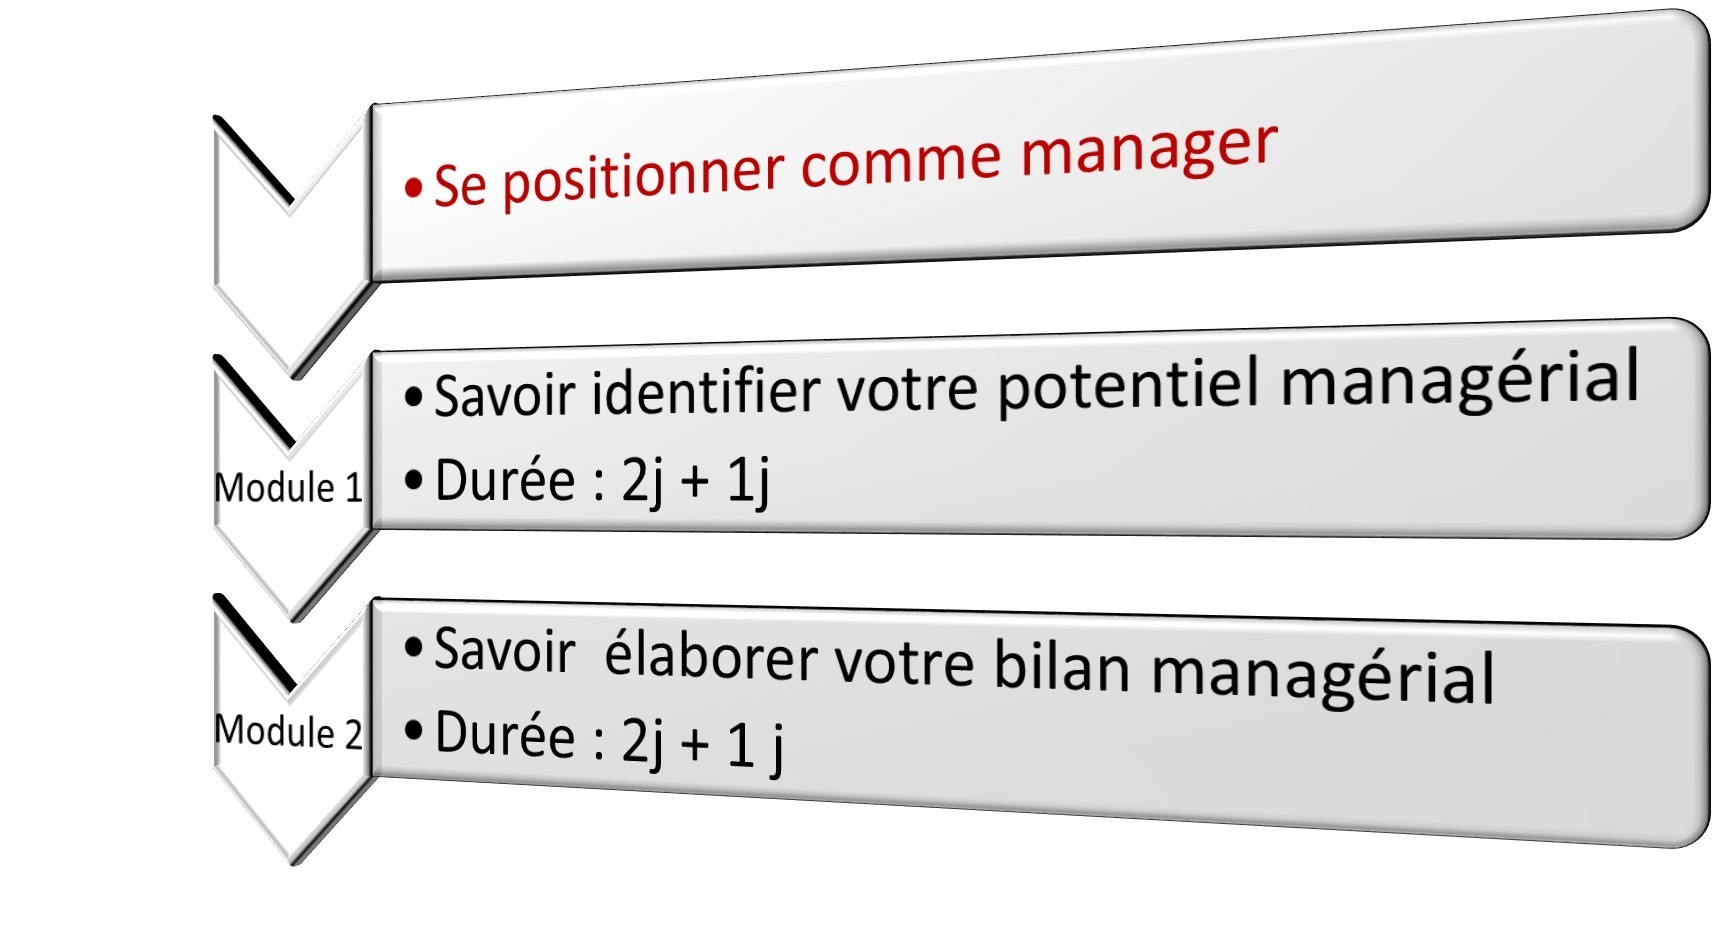 Se positionner comme manager